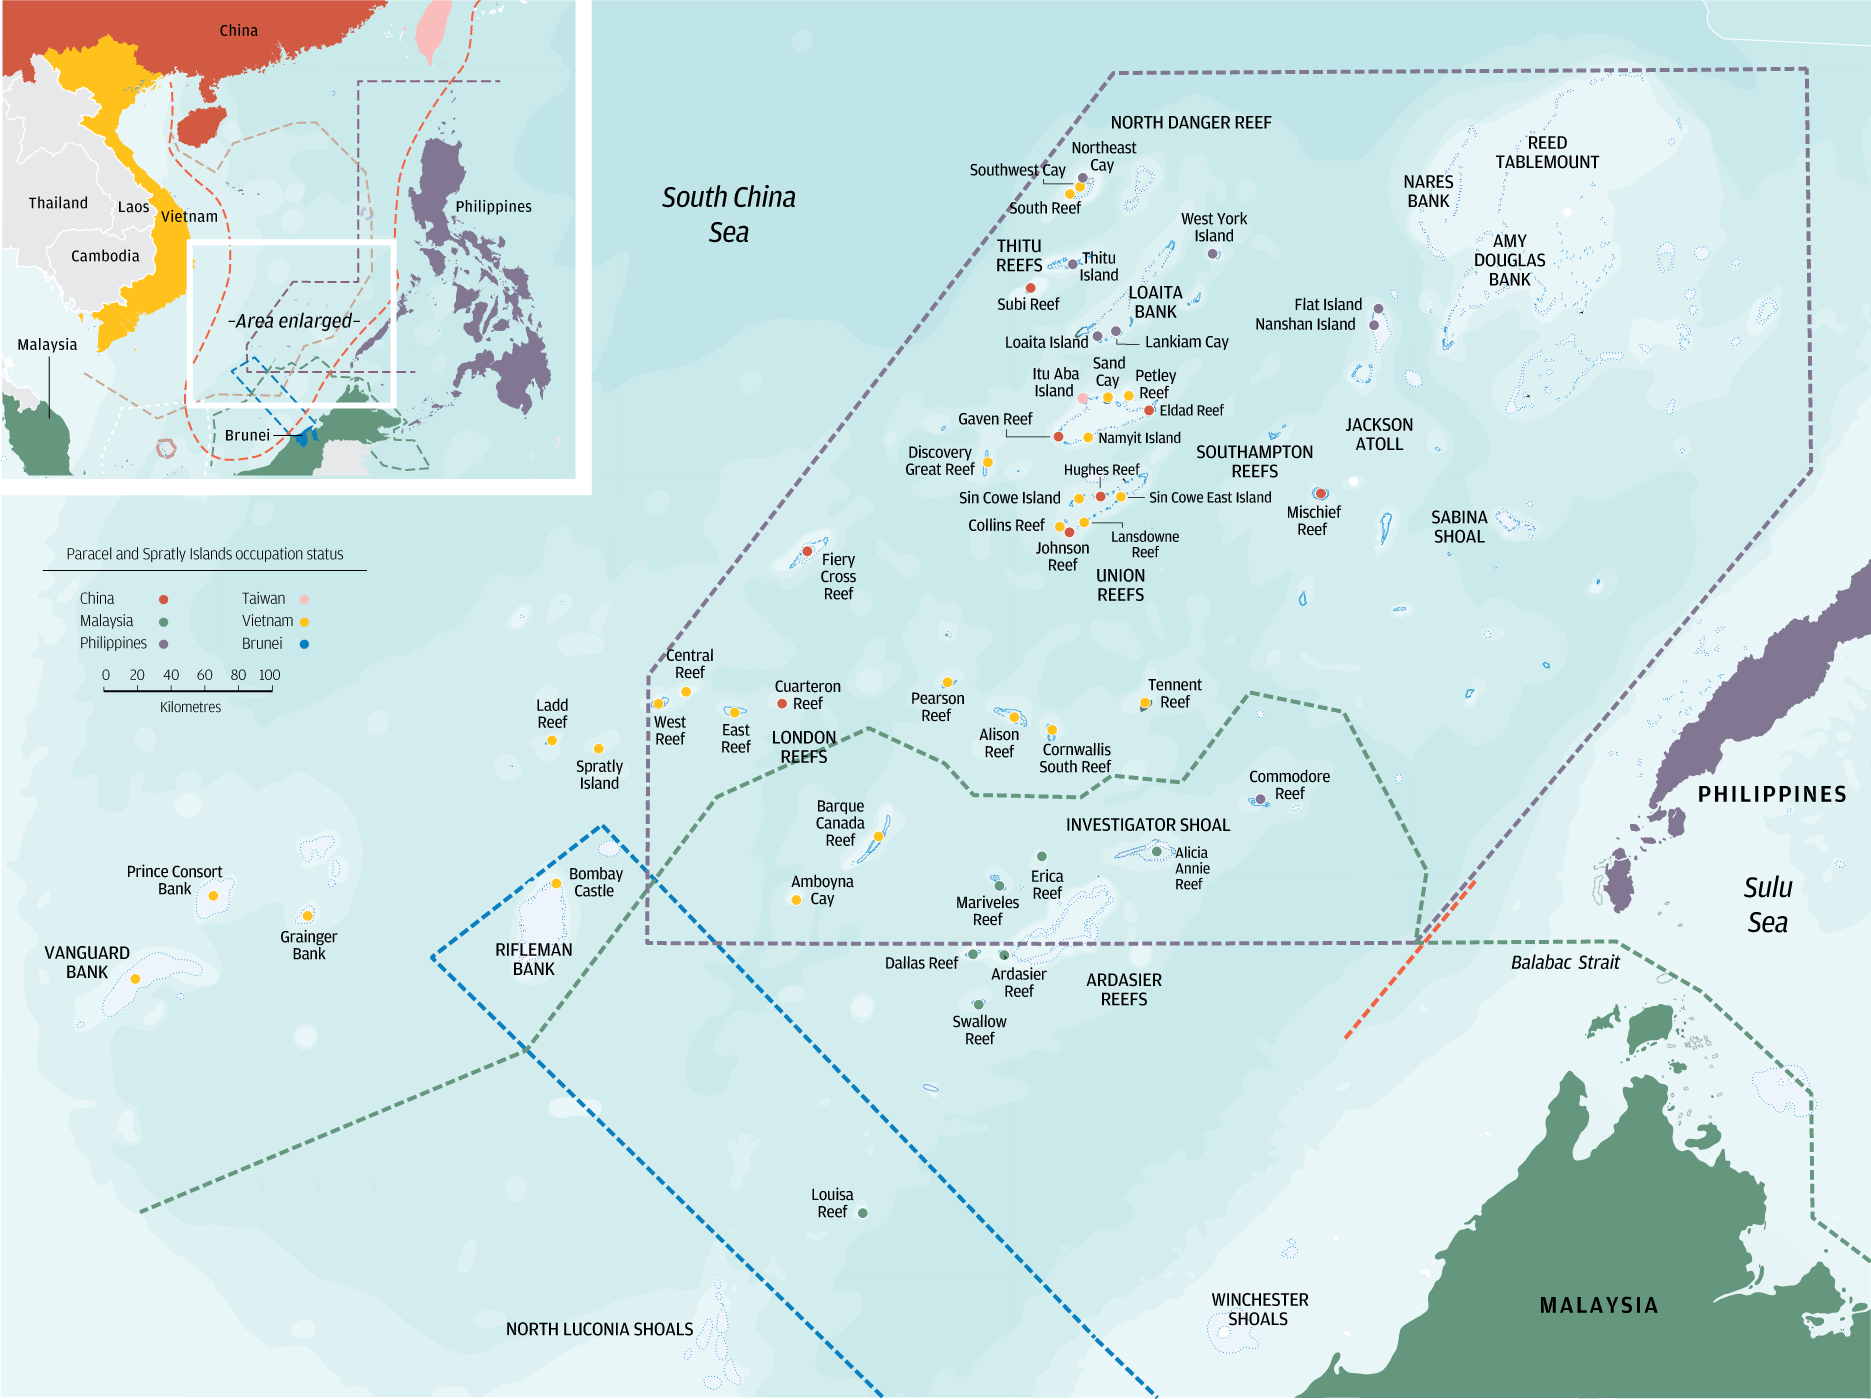 source south china morning post disputed islands in the south china sea